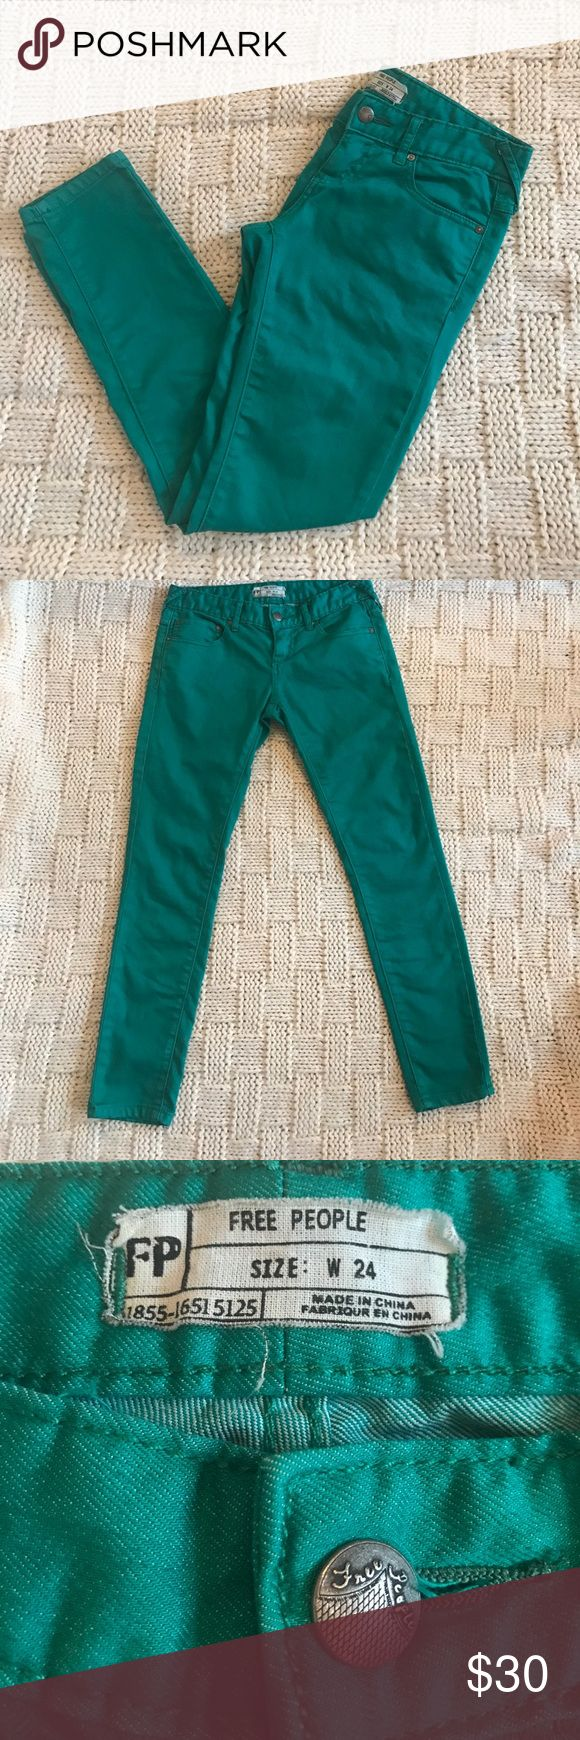 "FREE PEOPLE Skinny Jeans You need these jeans! Adorable and fun emerald green skinny jeans by Free People, size W 24. Comfortable and stretchy cotton/polyester blend. 26"" inseam. Excellent condition!! Free People Pants Skinny"